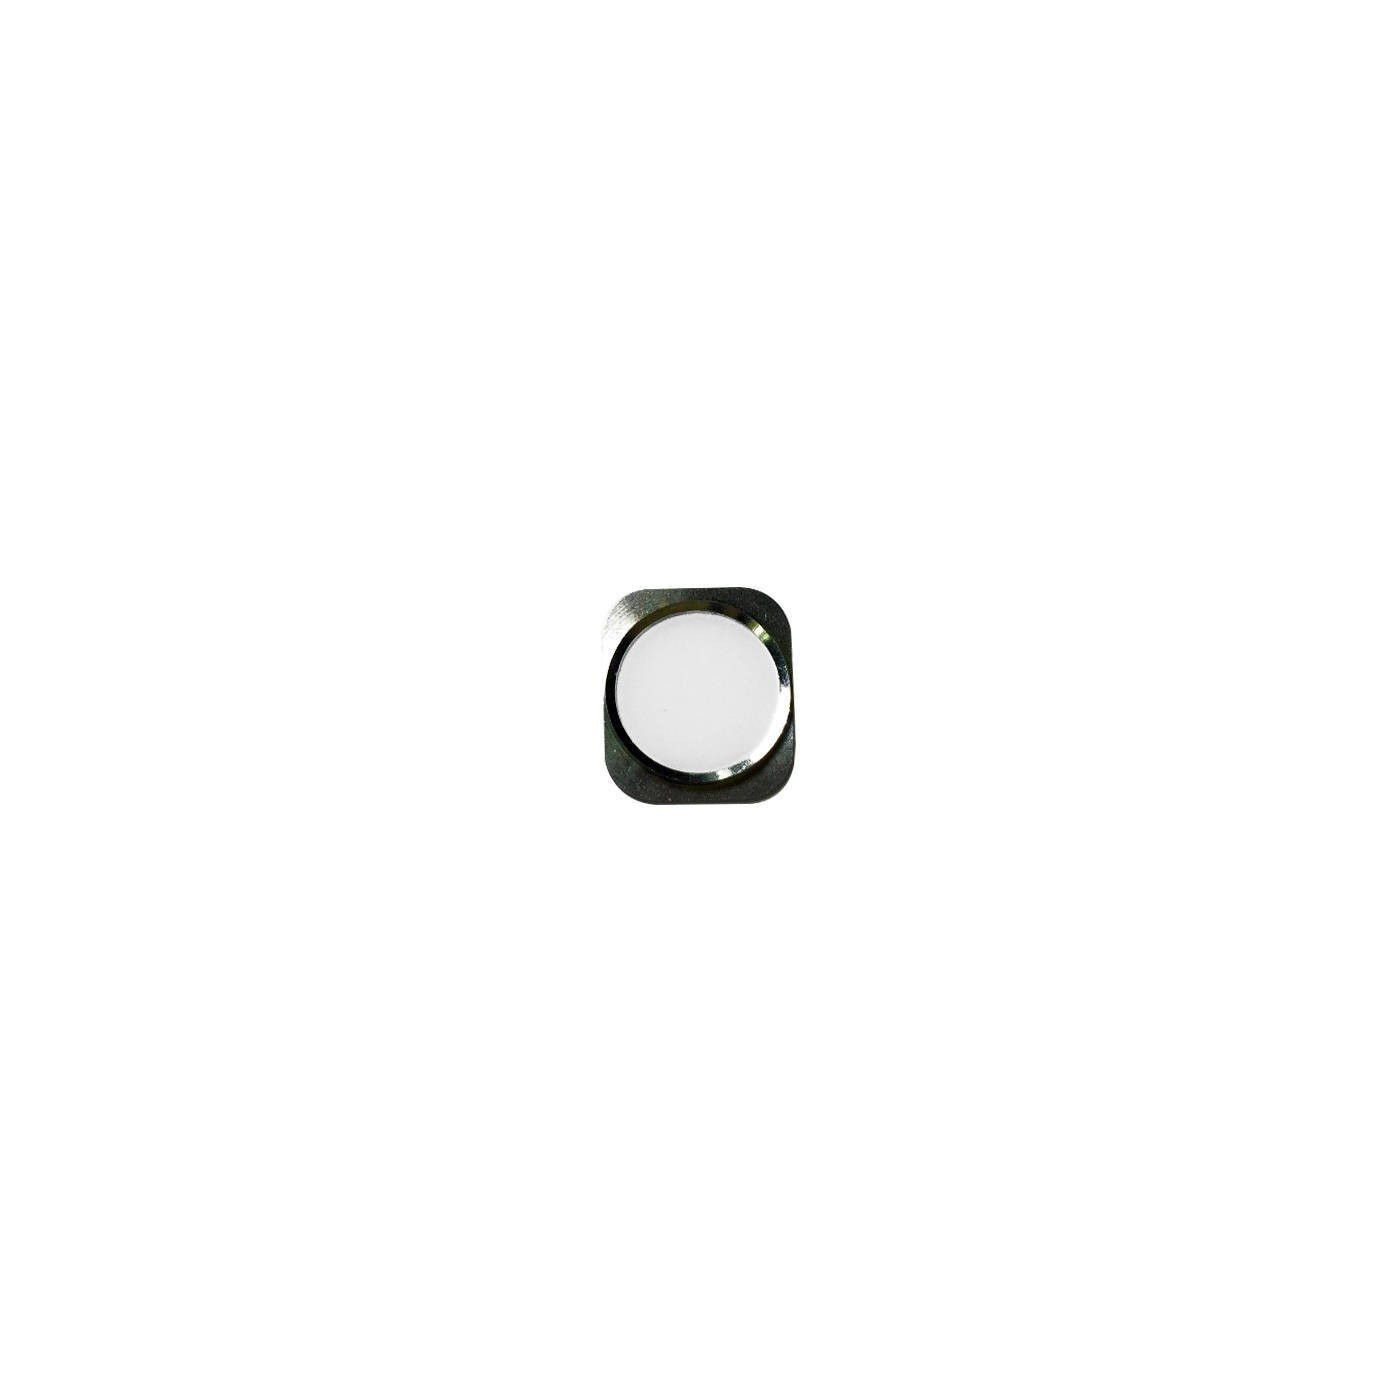 Tasto home per iPhone 6 - 6 Plus bianco button bottone centrale pulsante cursore